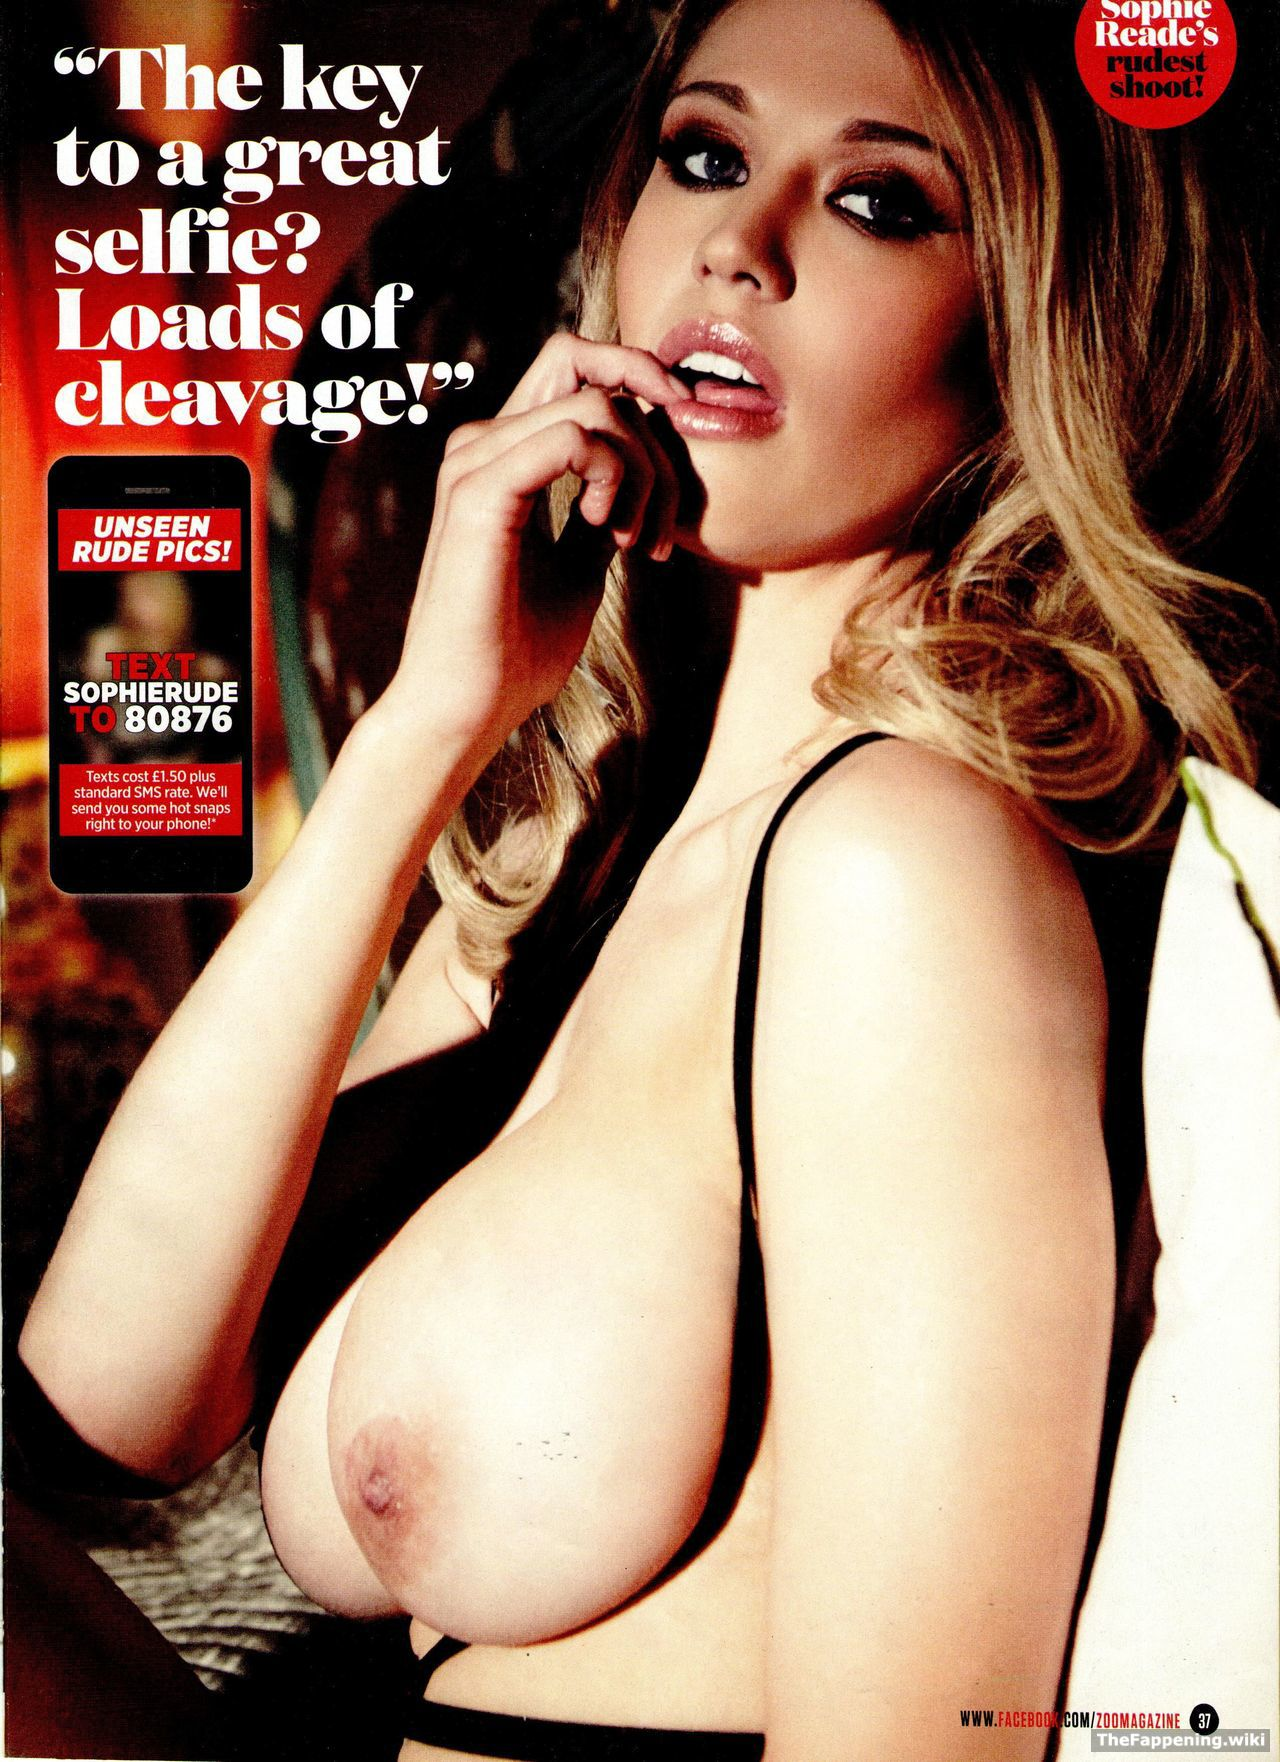 Accept. The Sophie reade sex tape that